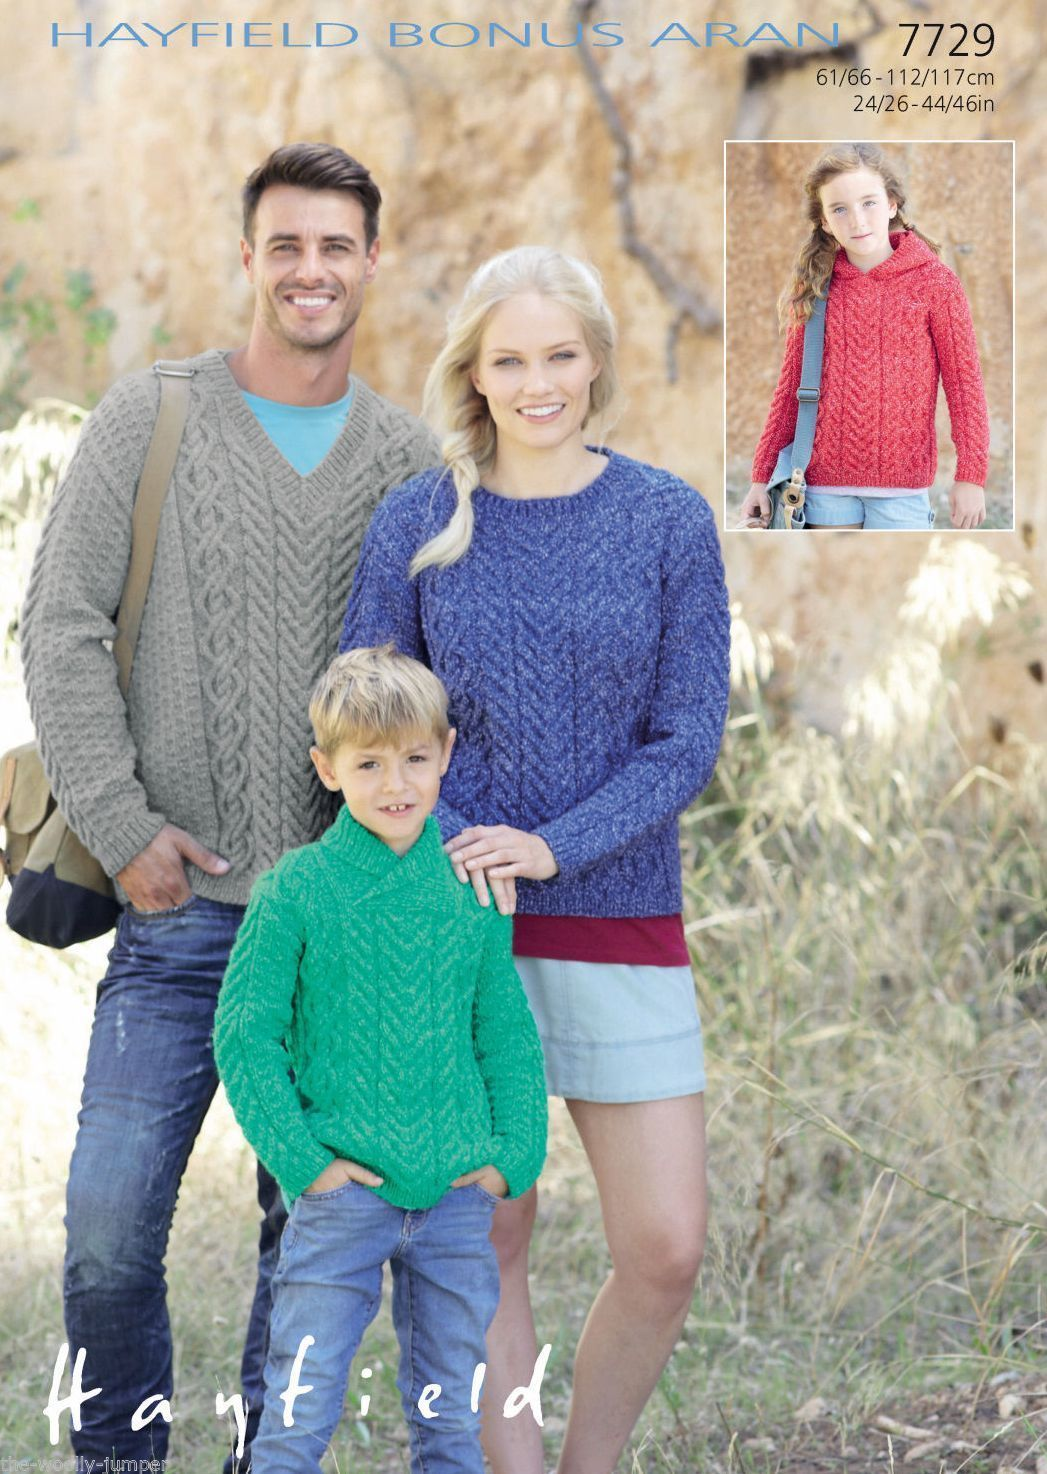 7729 hayfield bonus aran sweater knitting pattern to fit chest 7729 hayfield bonus aran sweater knitting pattern to fit chest 24 to 46 bankloansurffo Gallery